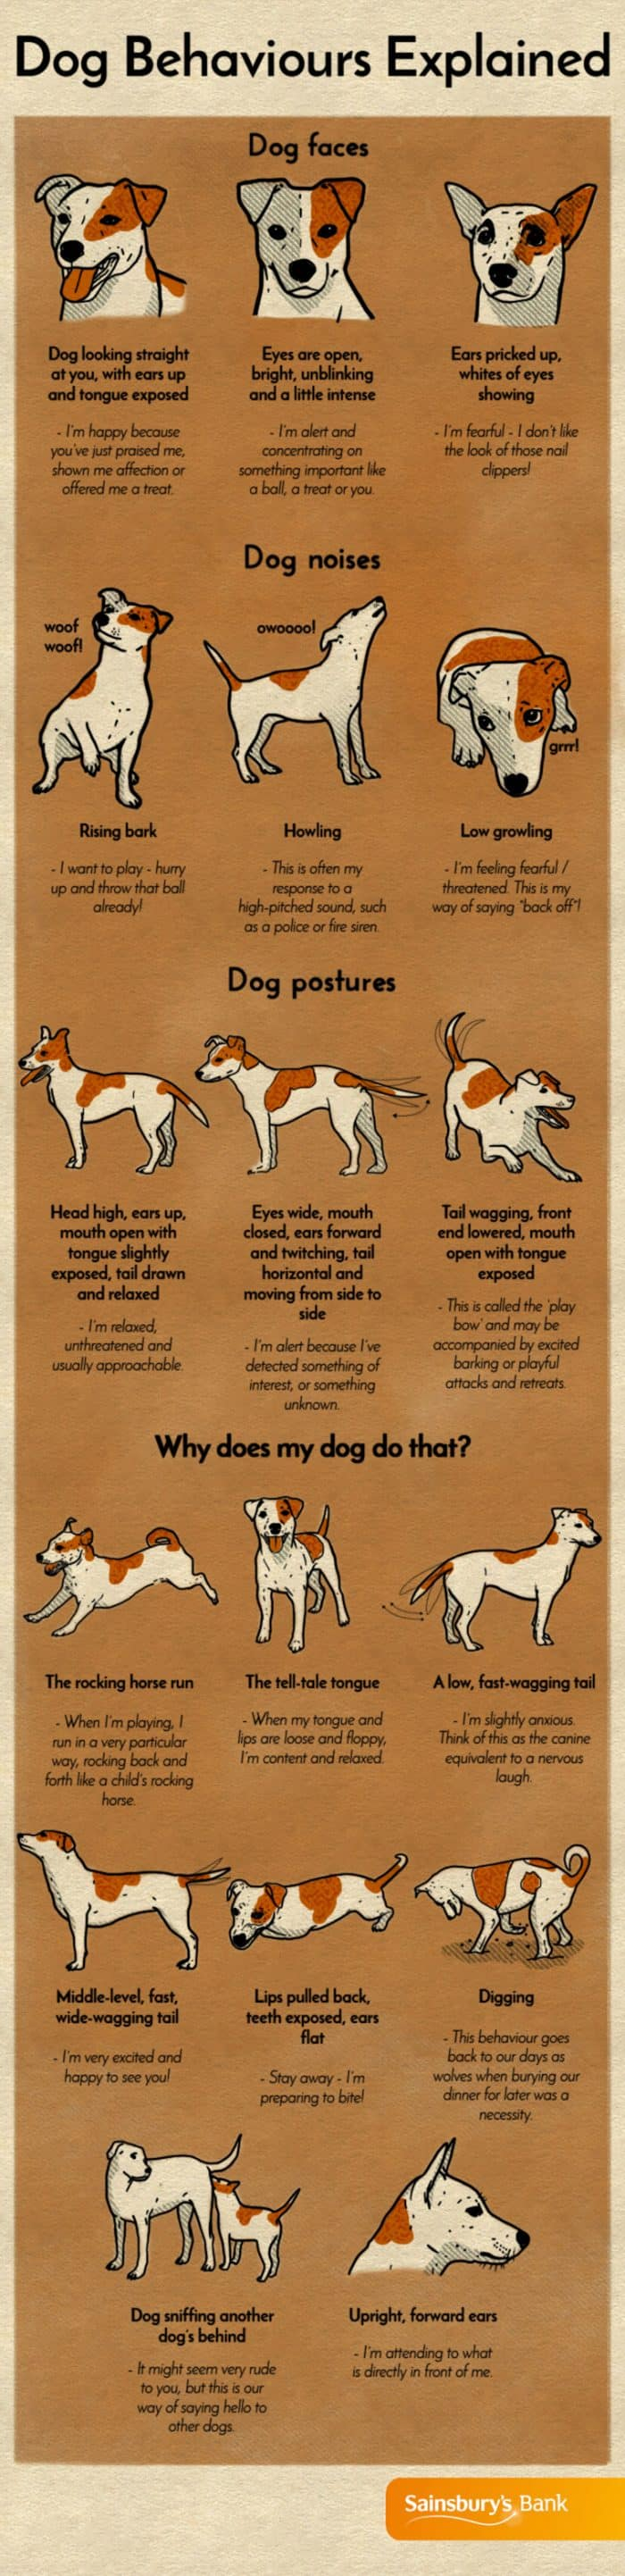 explanation of common dog behaviors including positions and sounds